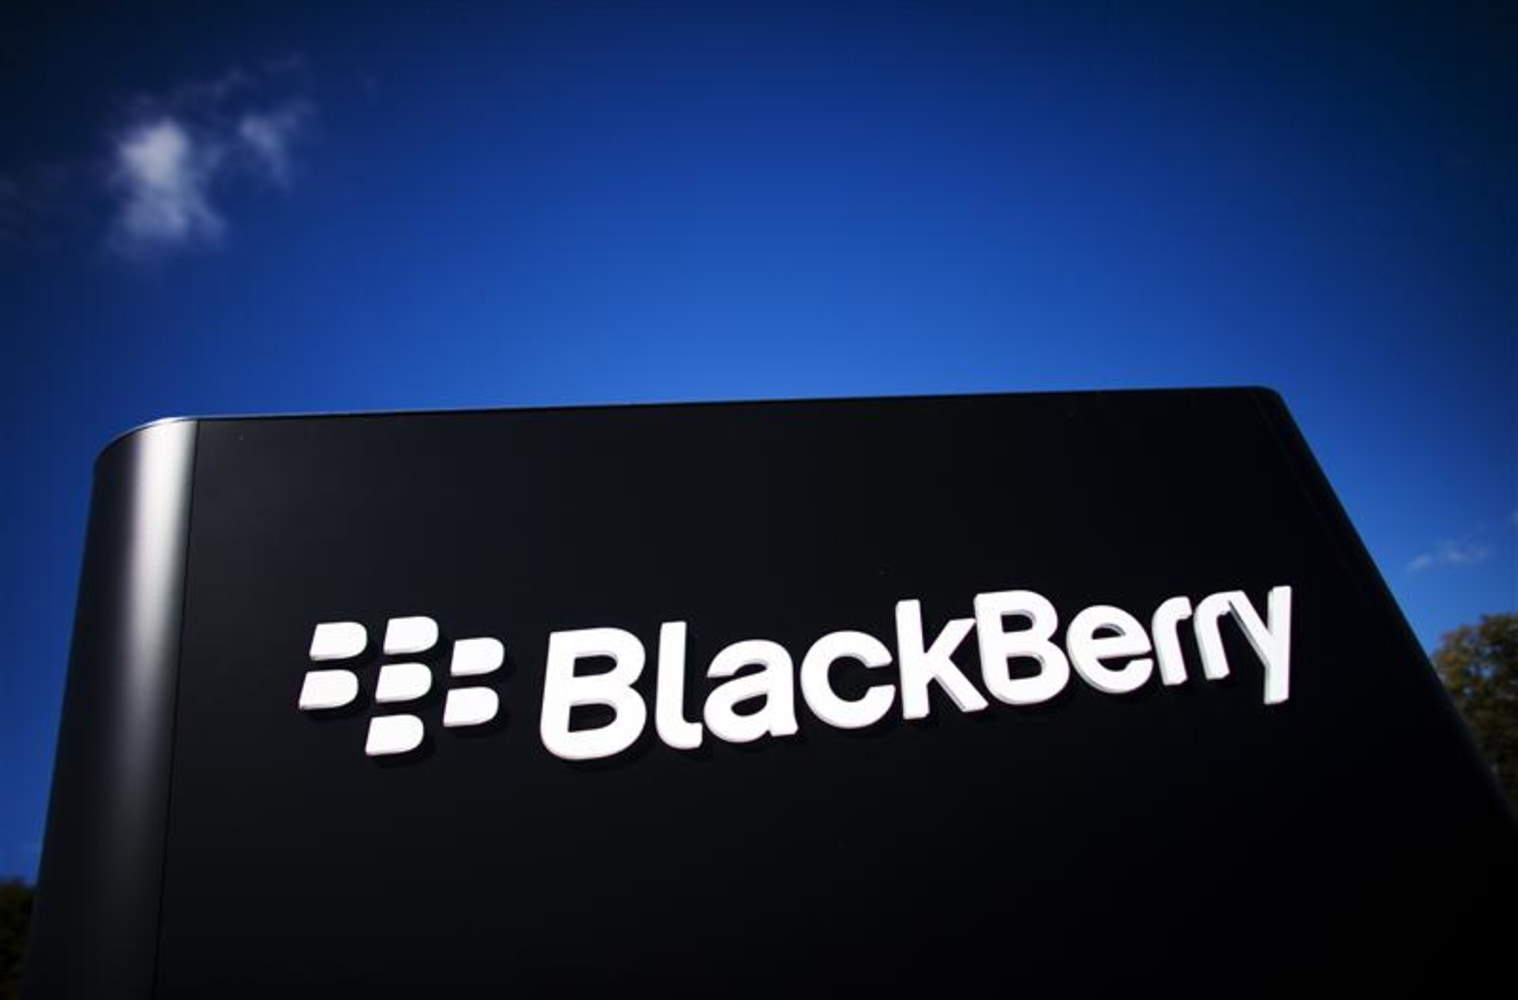 BlackBerry? Like, so not cool, say young users